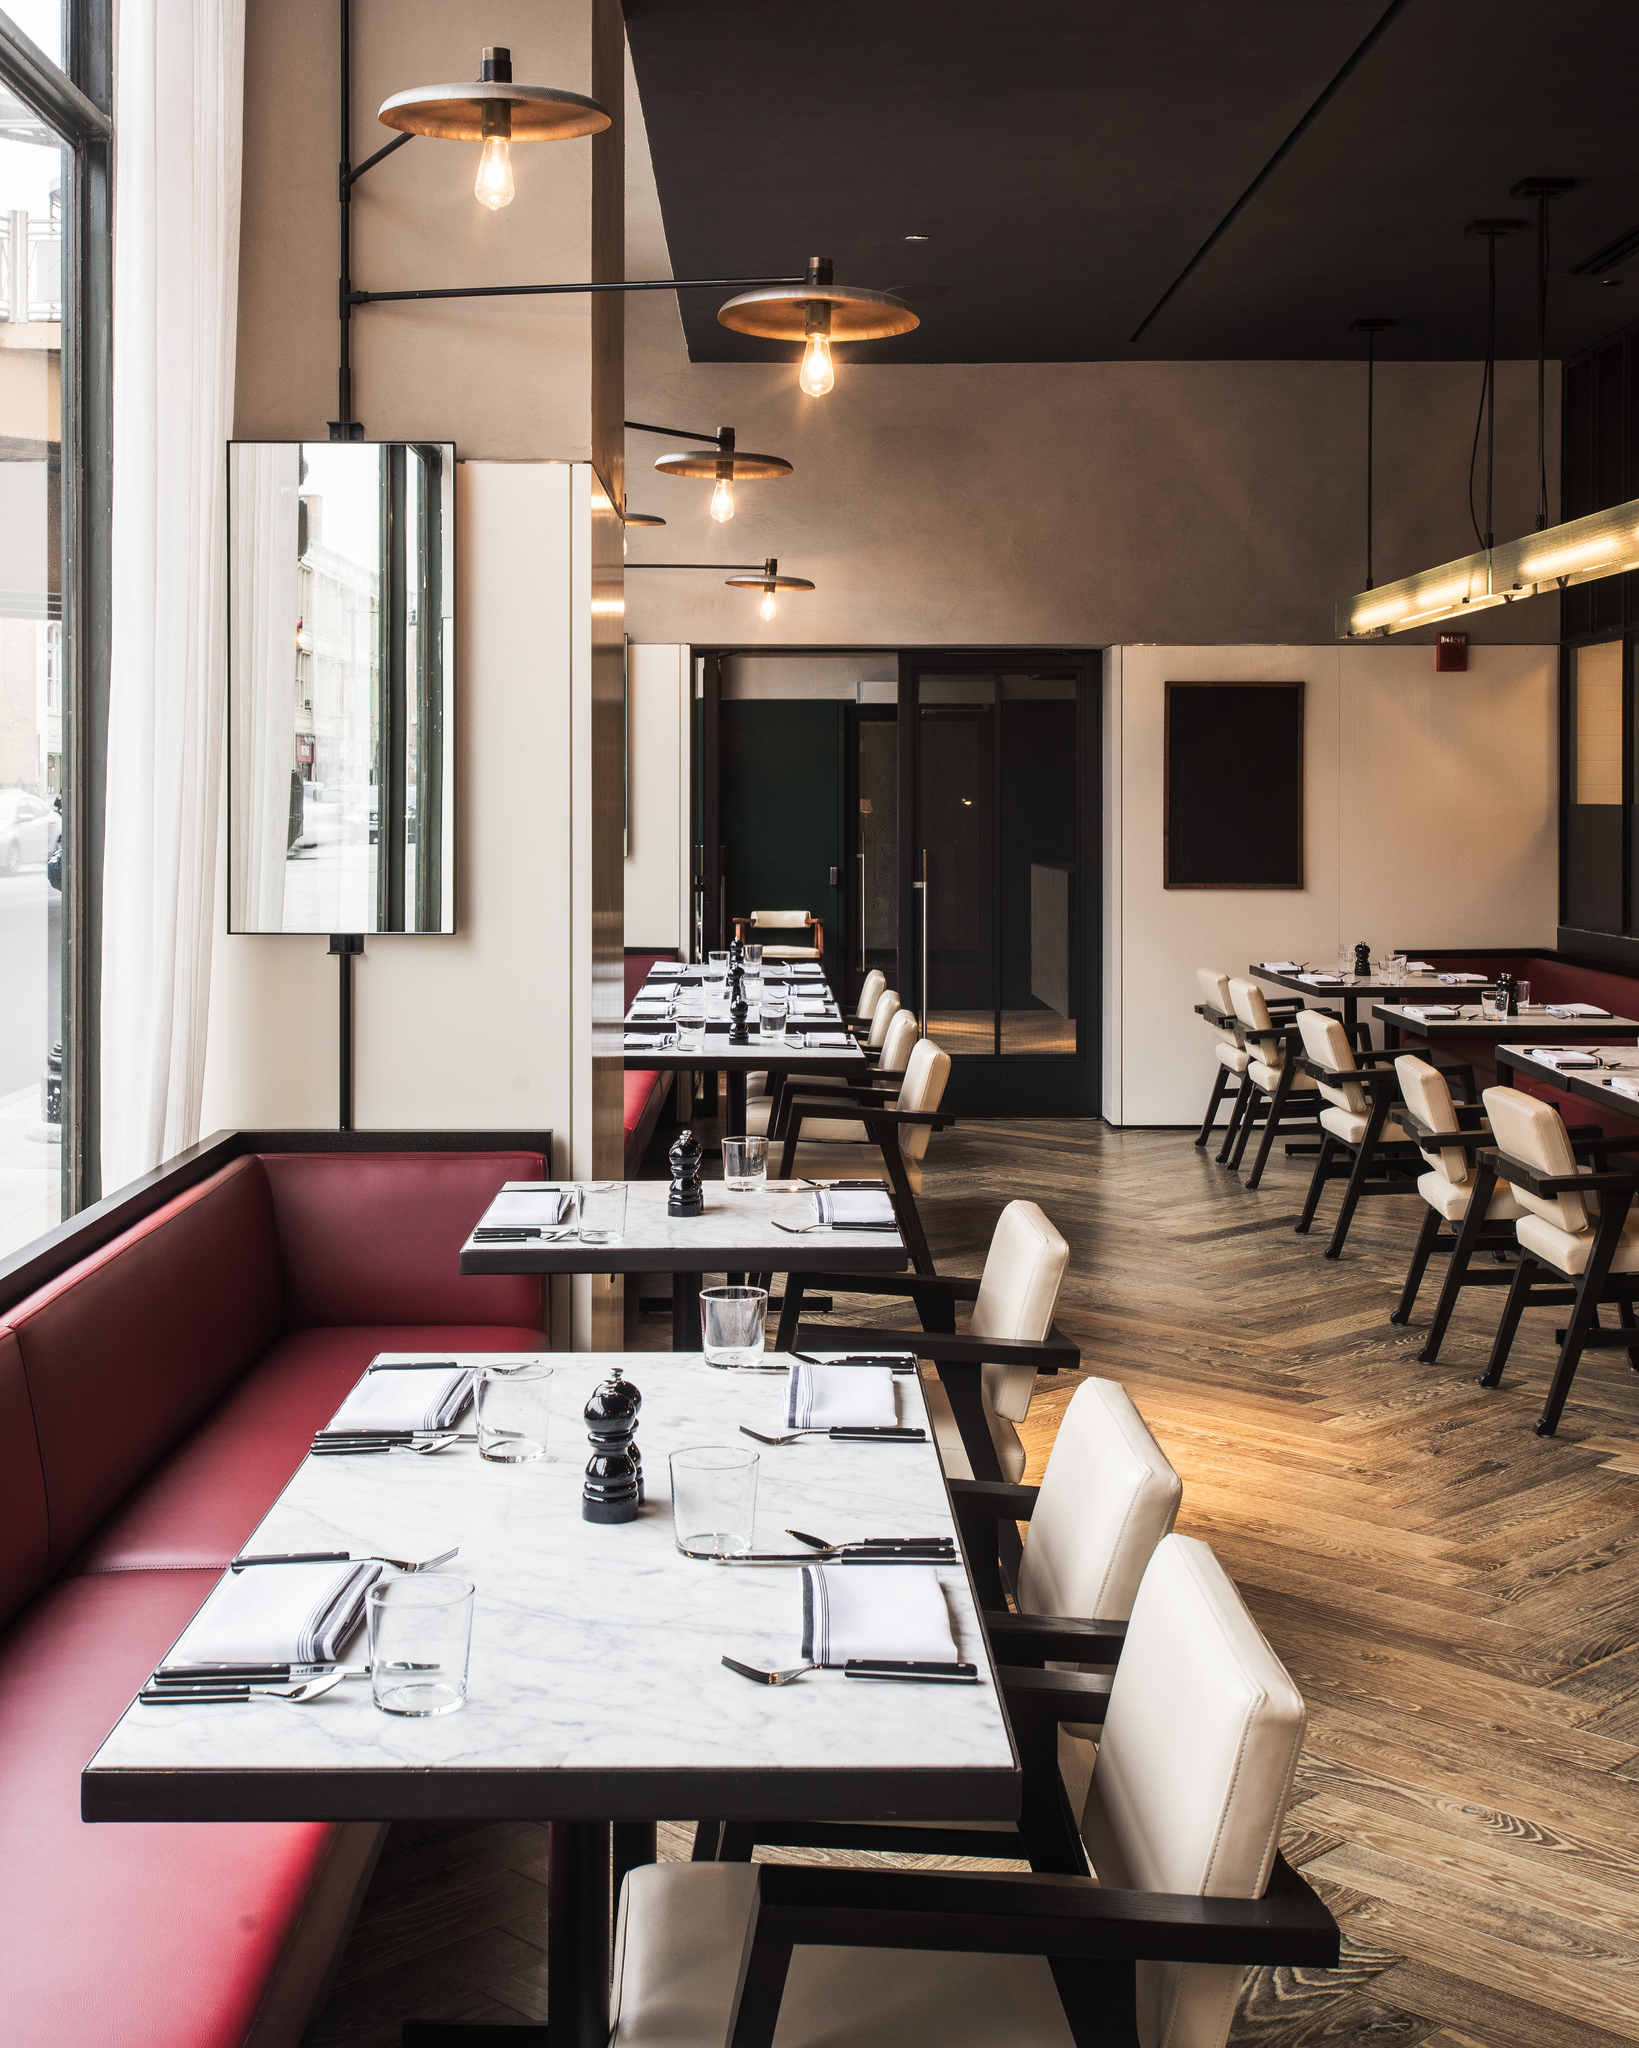 Tour the wicker park hotels 39 restaurants bars and for Robey hotel chicago